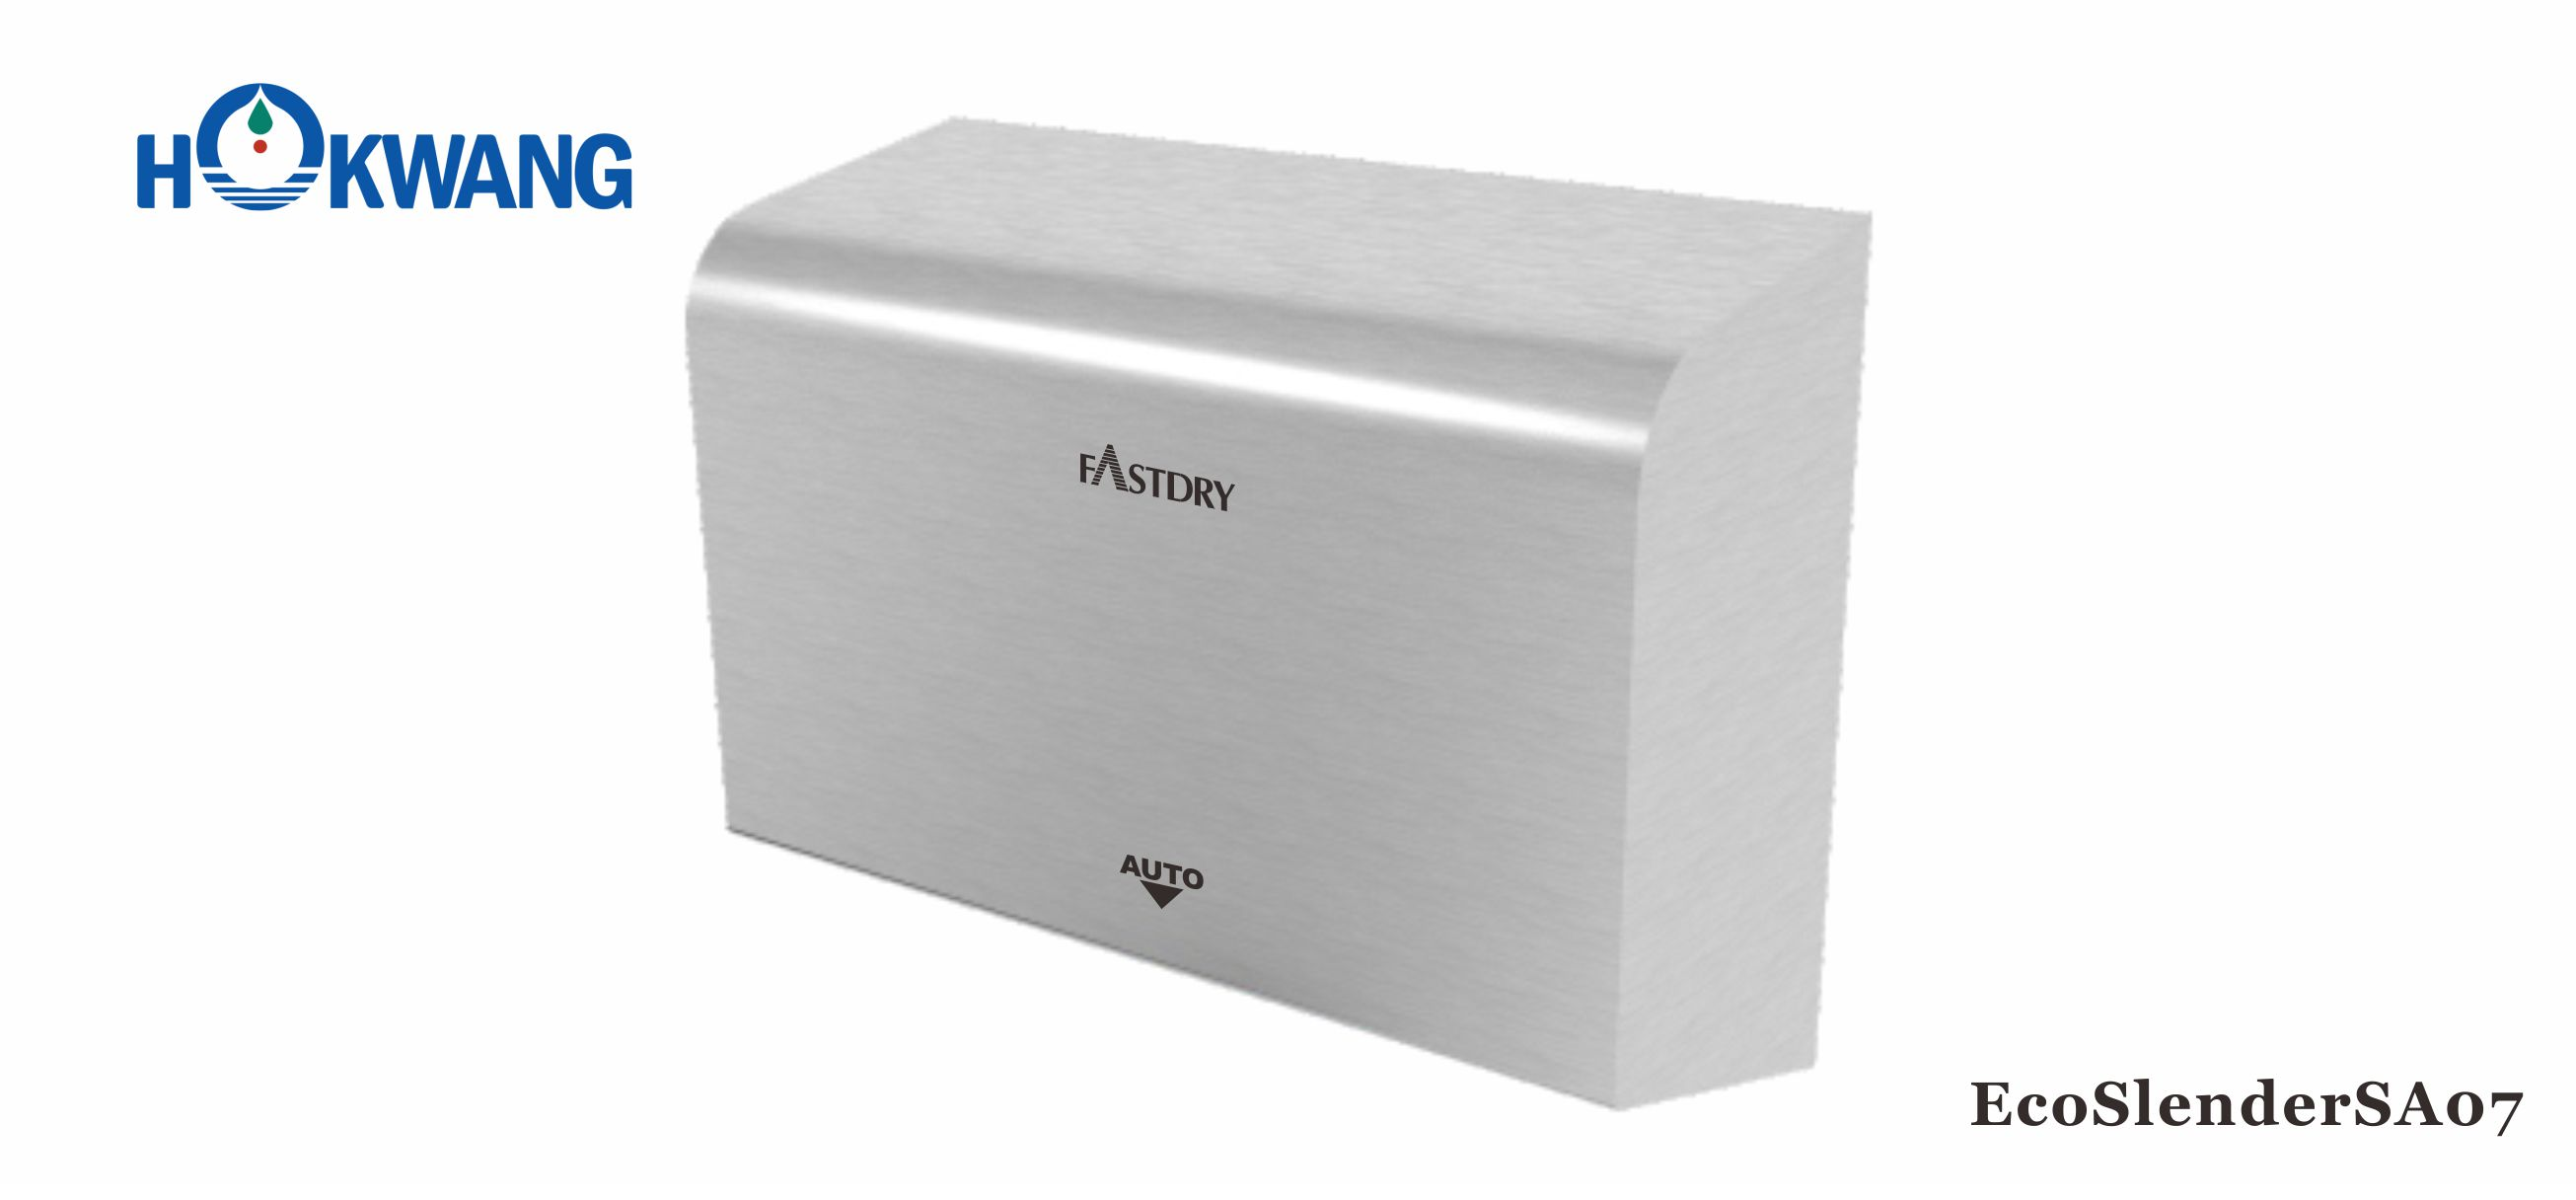 ADA high speed slim hand dryer in brushed stainless steel 304 rectangle cover with quarter circle design on the top  - model number EcoSlenderSA07